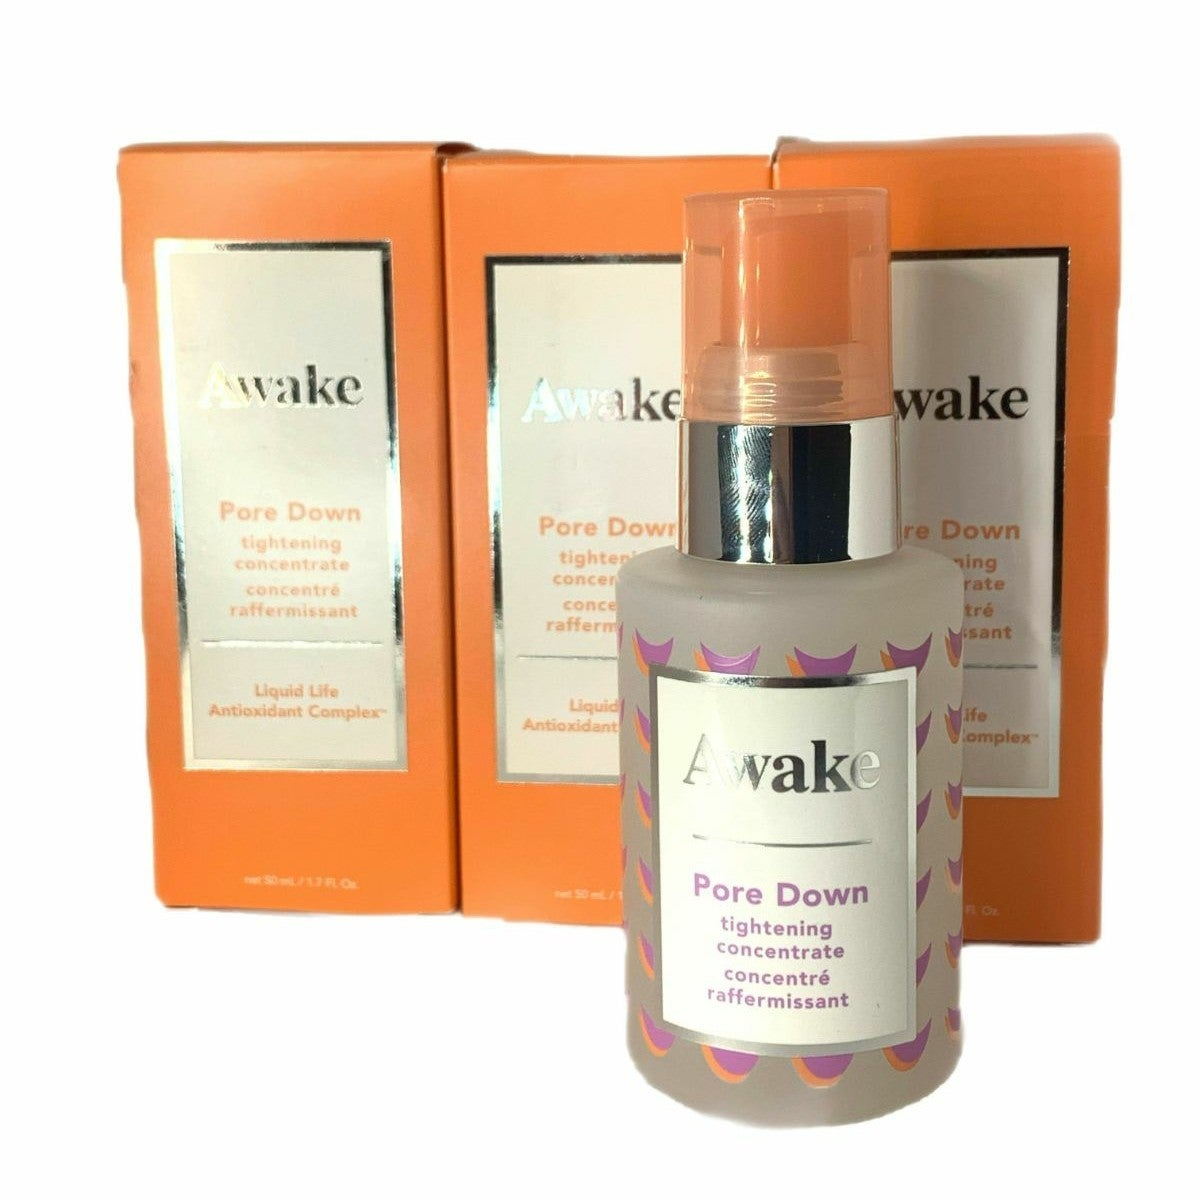 Awake Pore Down Tightening Concentrate